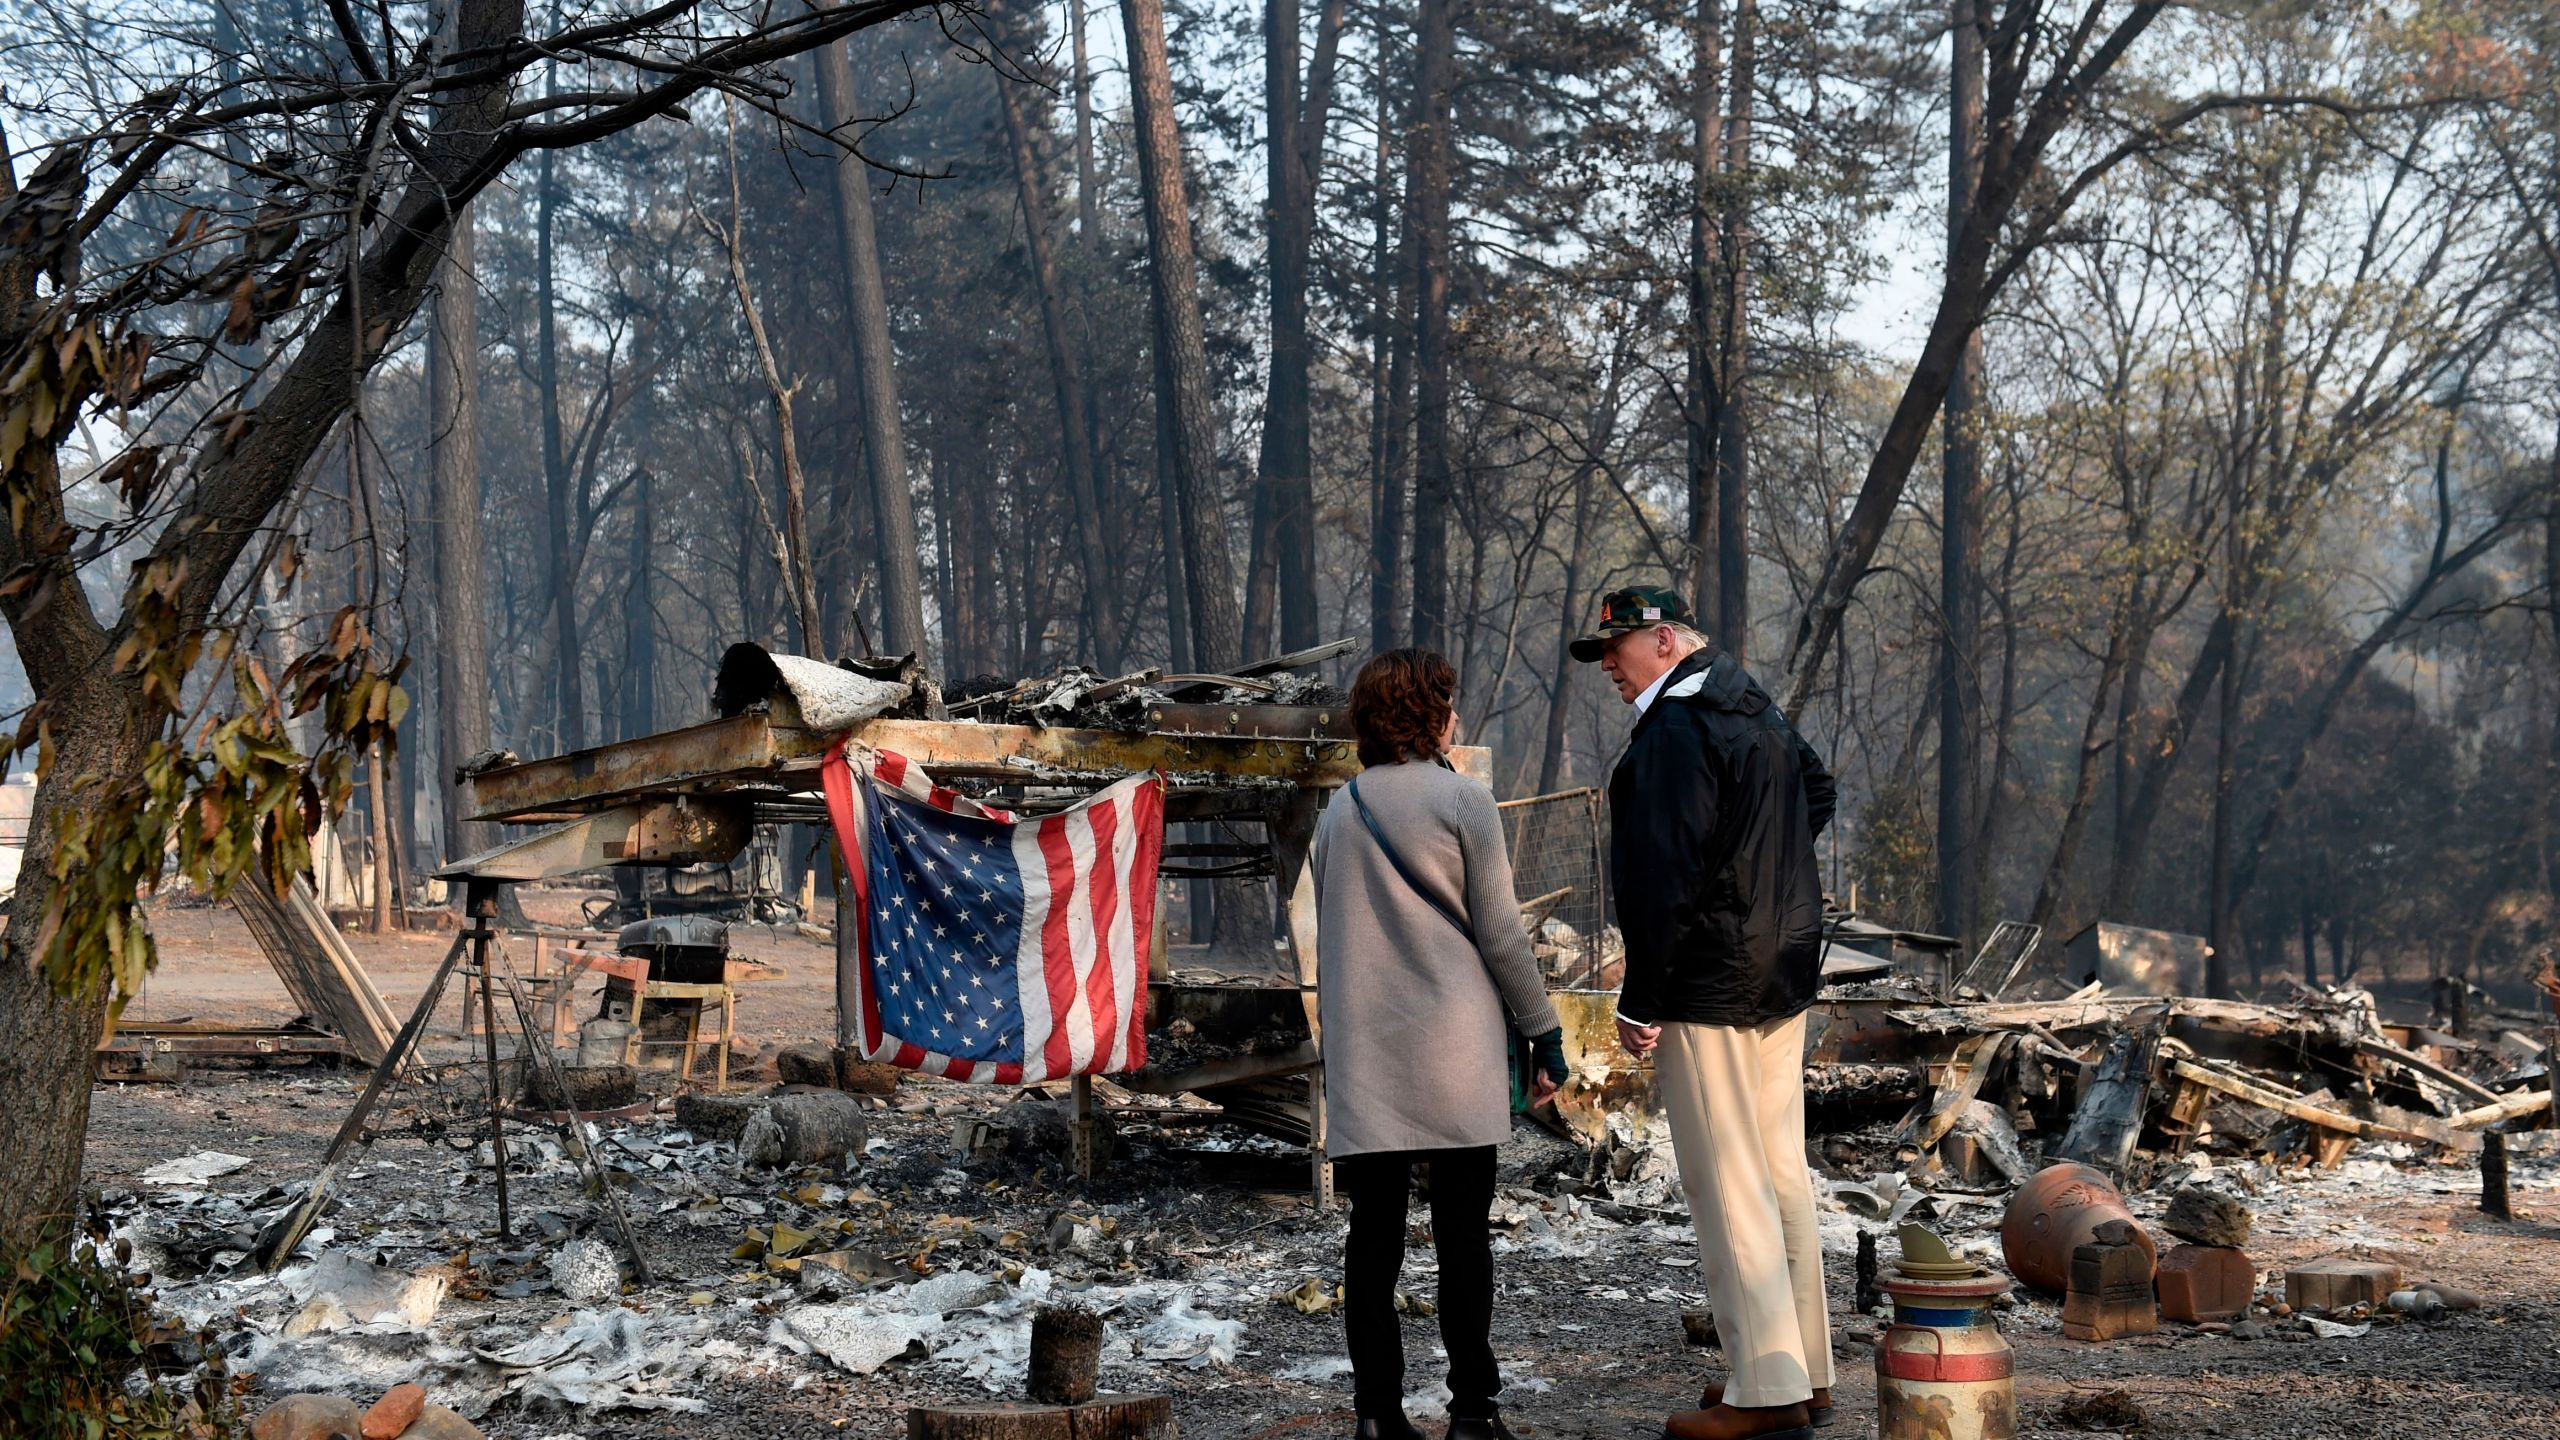 Donald Trump views damage from the Camp Fire in Paradise, California on Nov. 17, 2018. (Credit: SAUL LOEB/AFP/Getty Images)